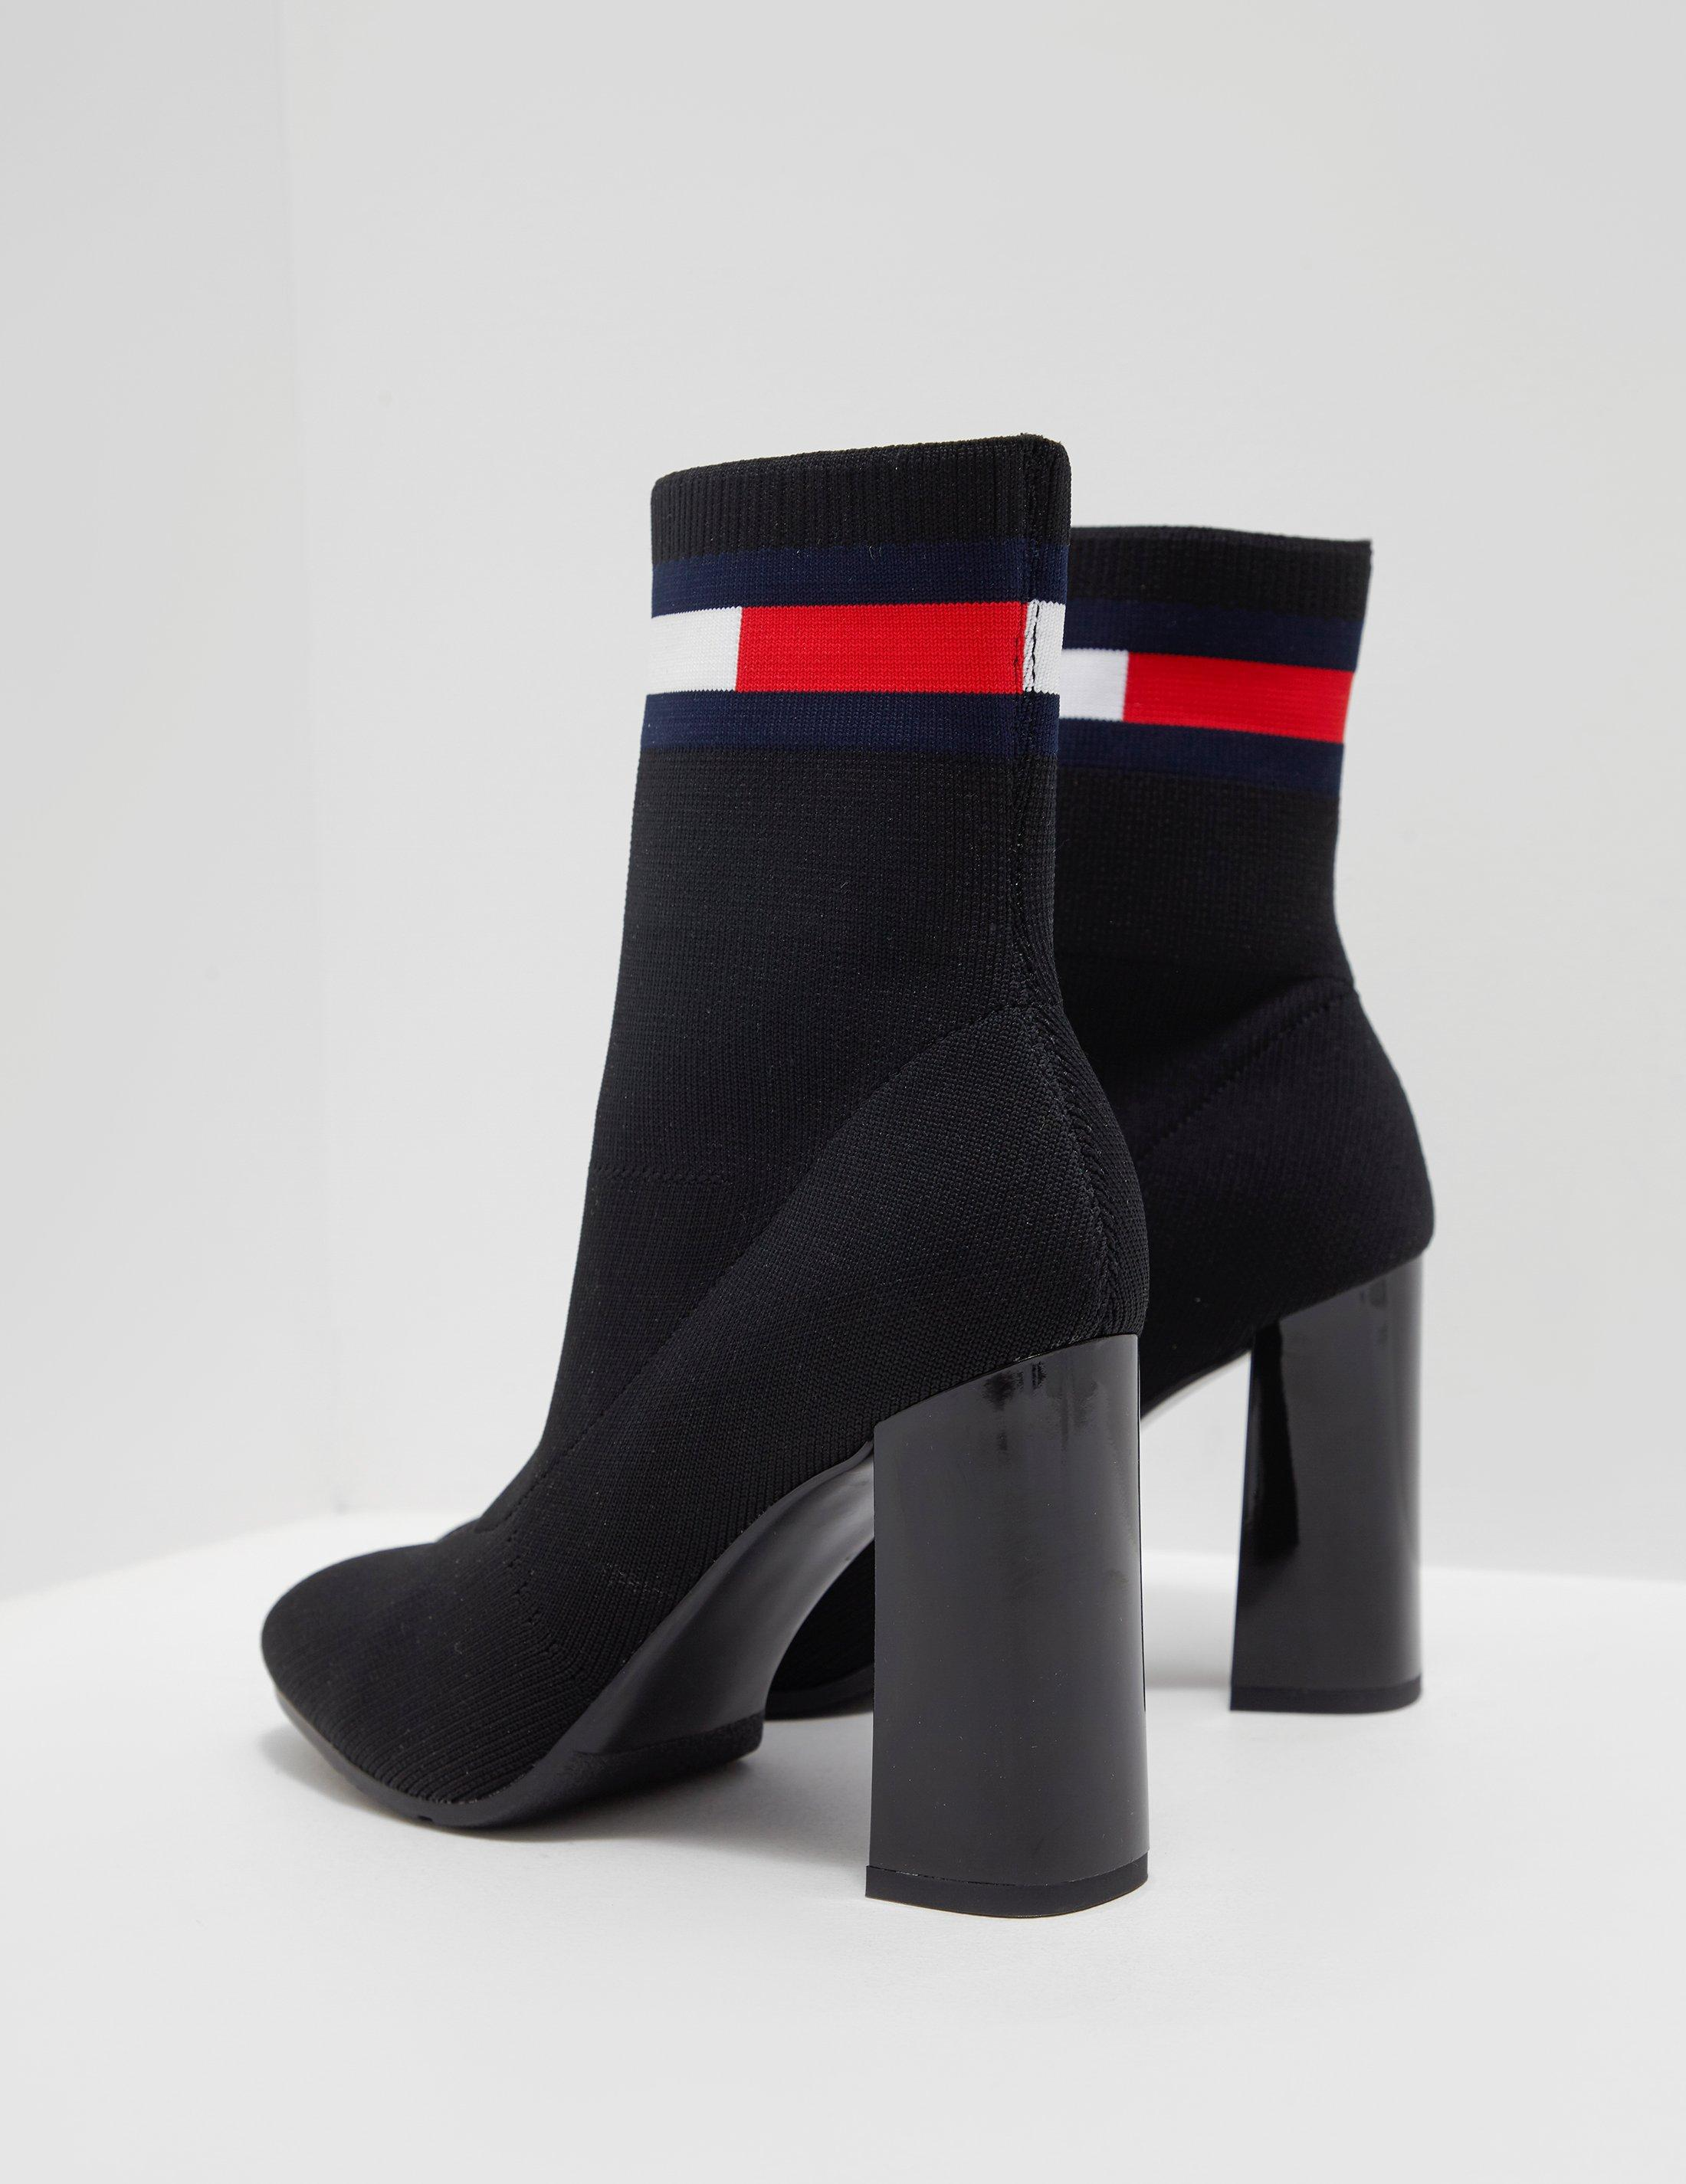 48460132cf9 Tommy Hilfiger Womens Sock Heeled Boots Black - Lyst